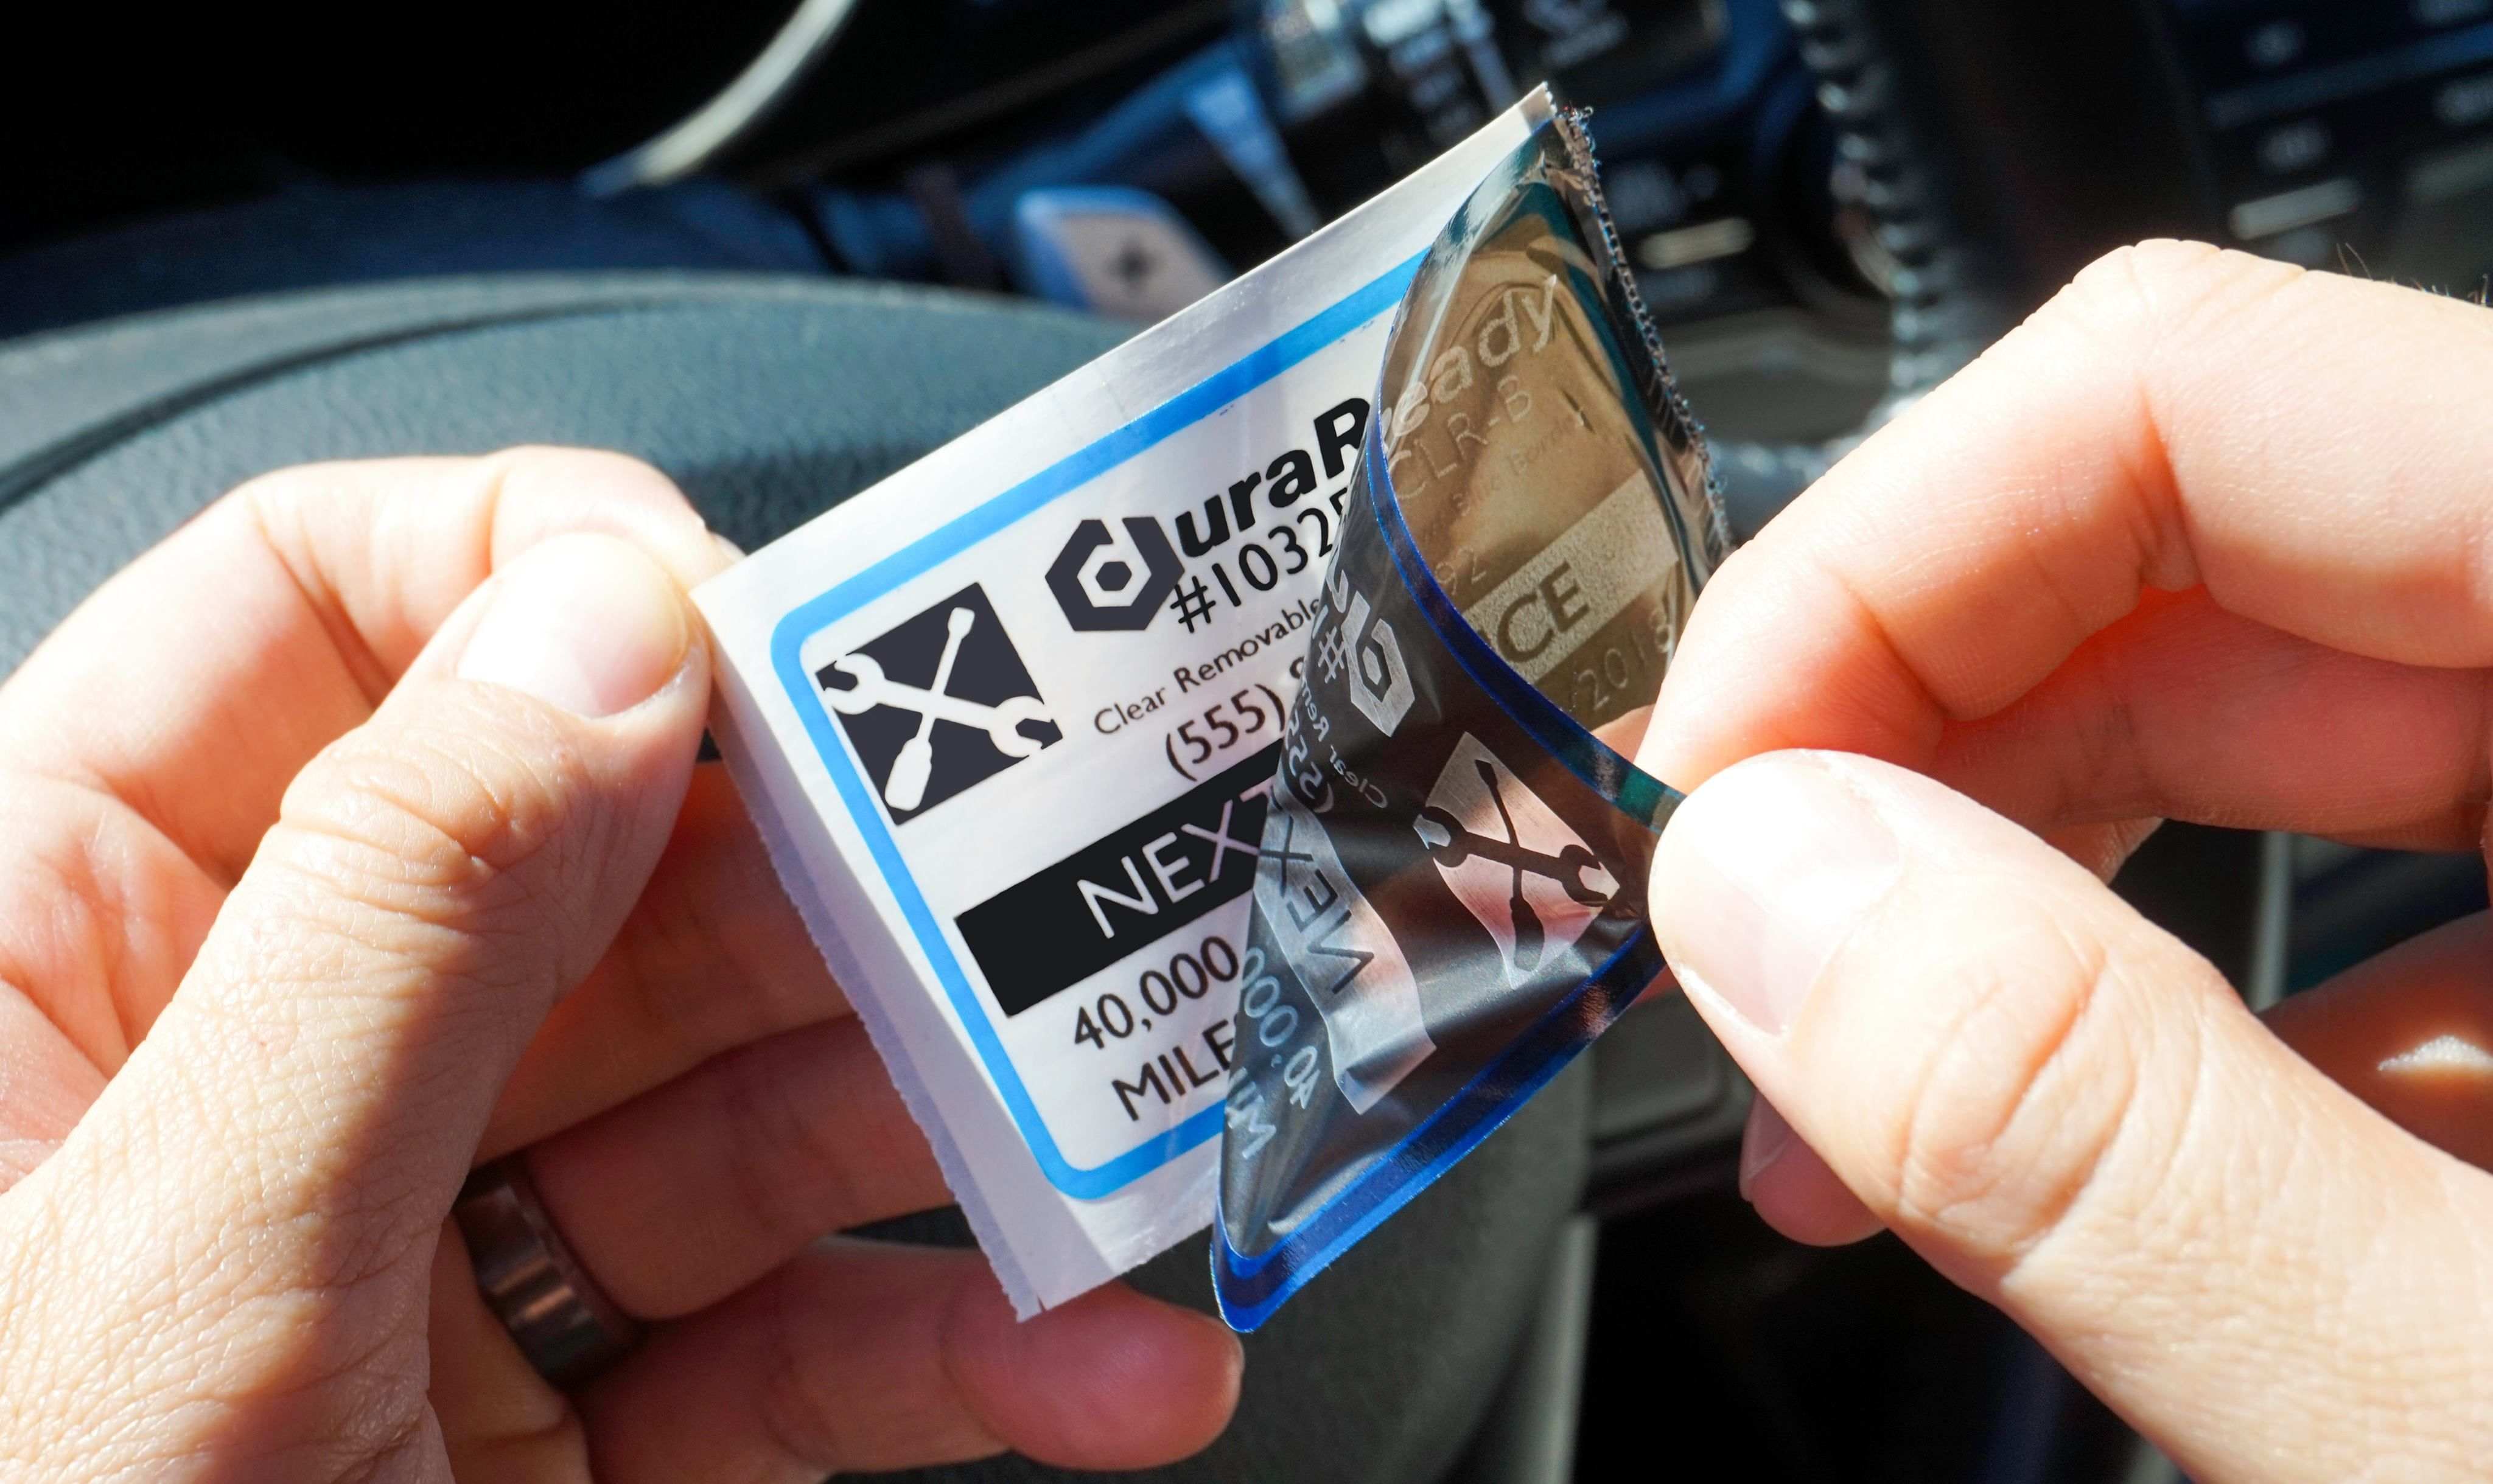 Durareadys 1032 removable oil change and service reminder labels are now available in clear with